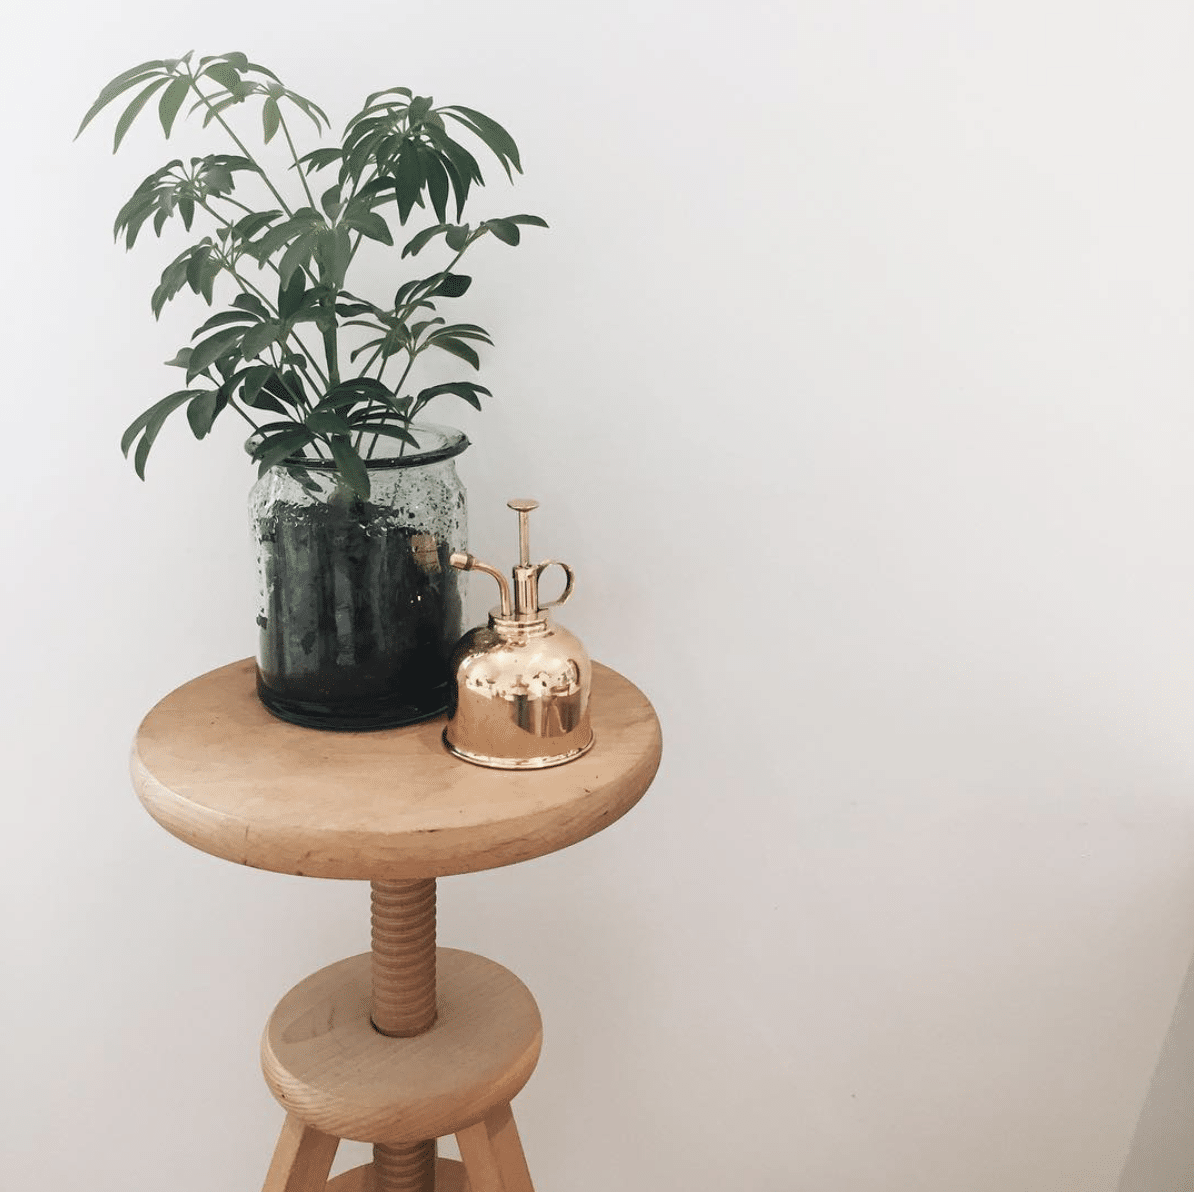 tabouret urban jungle chiné vintage kinfolk slow design